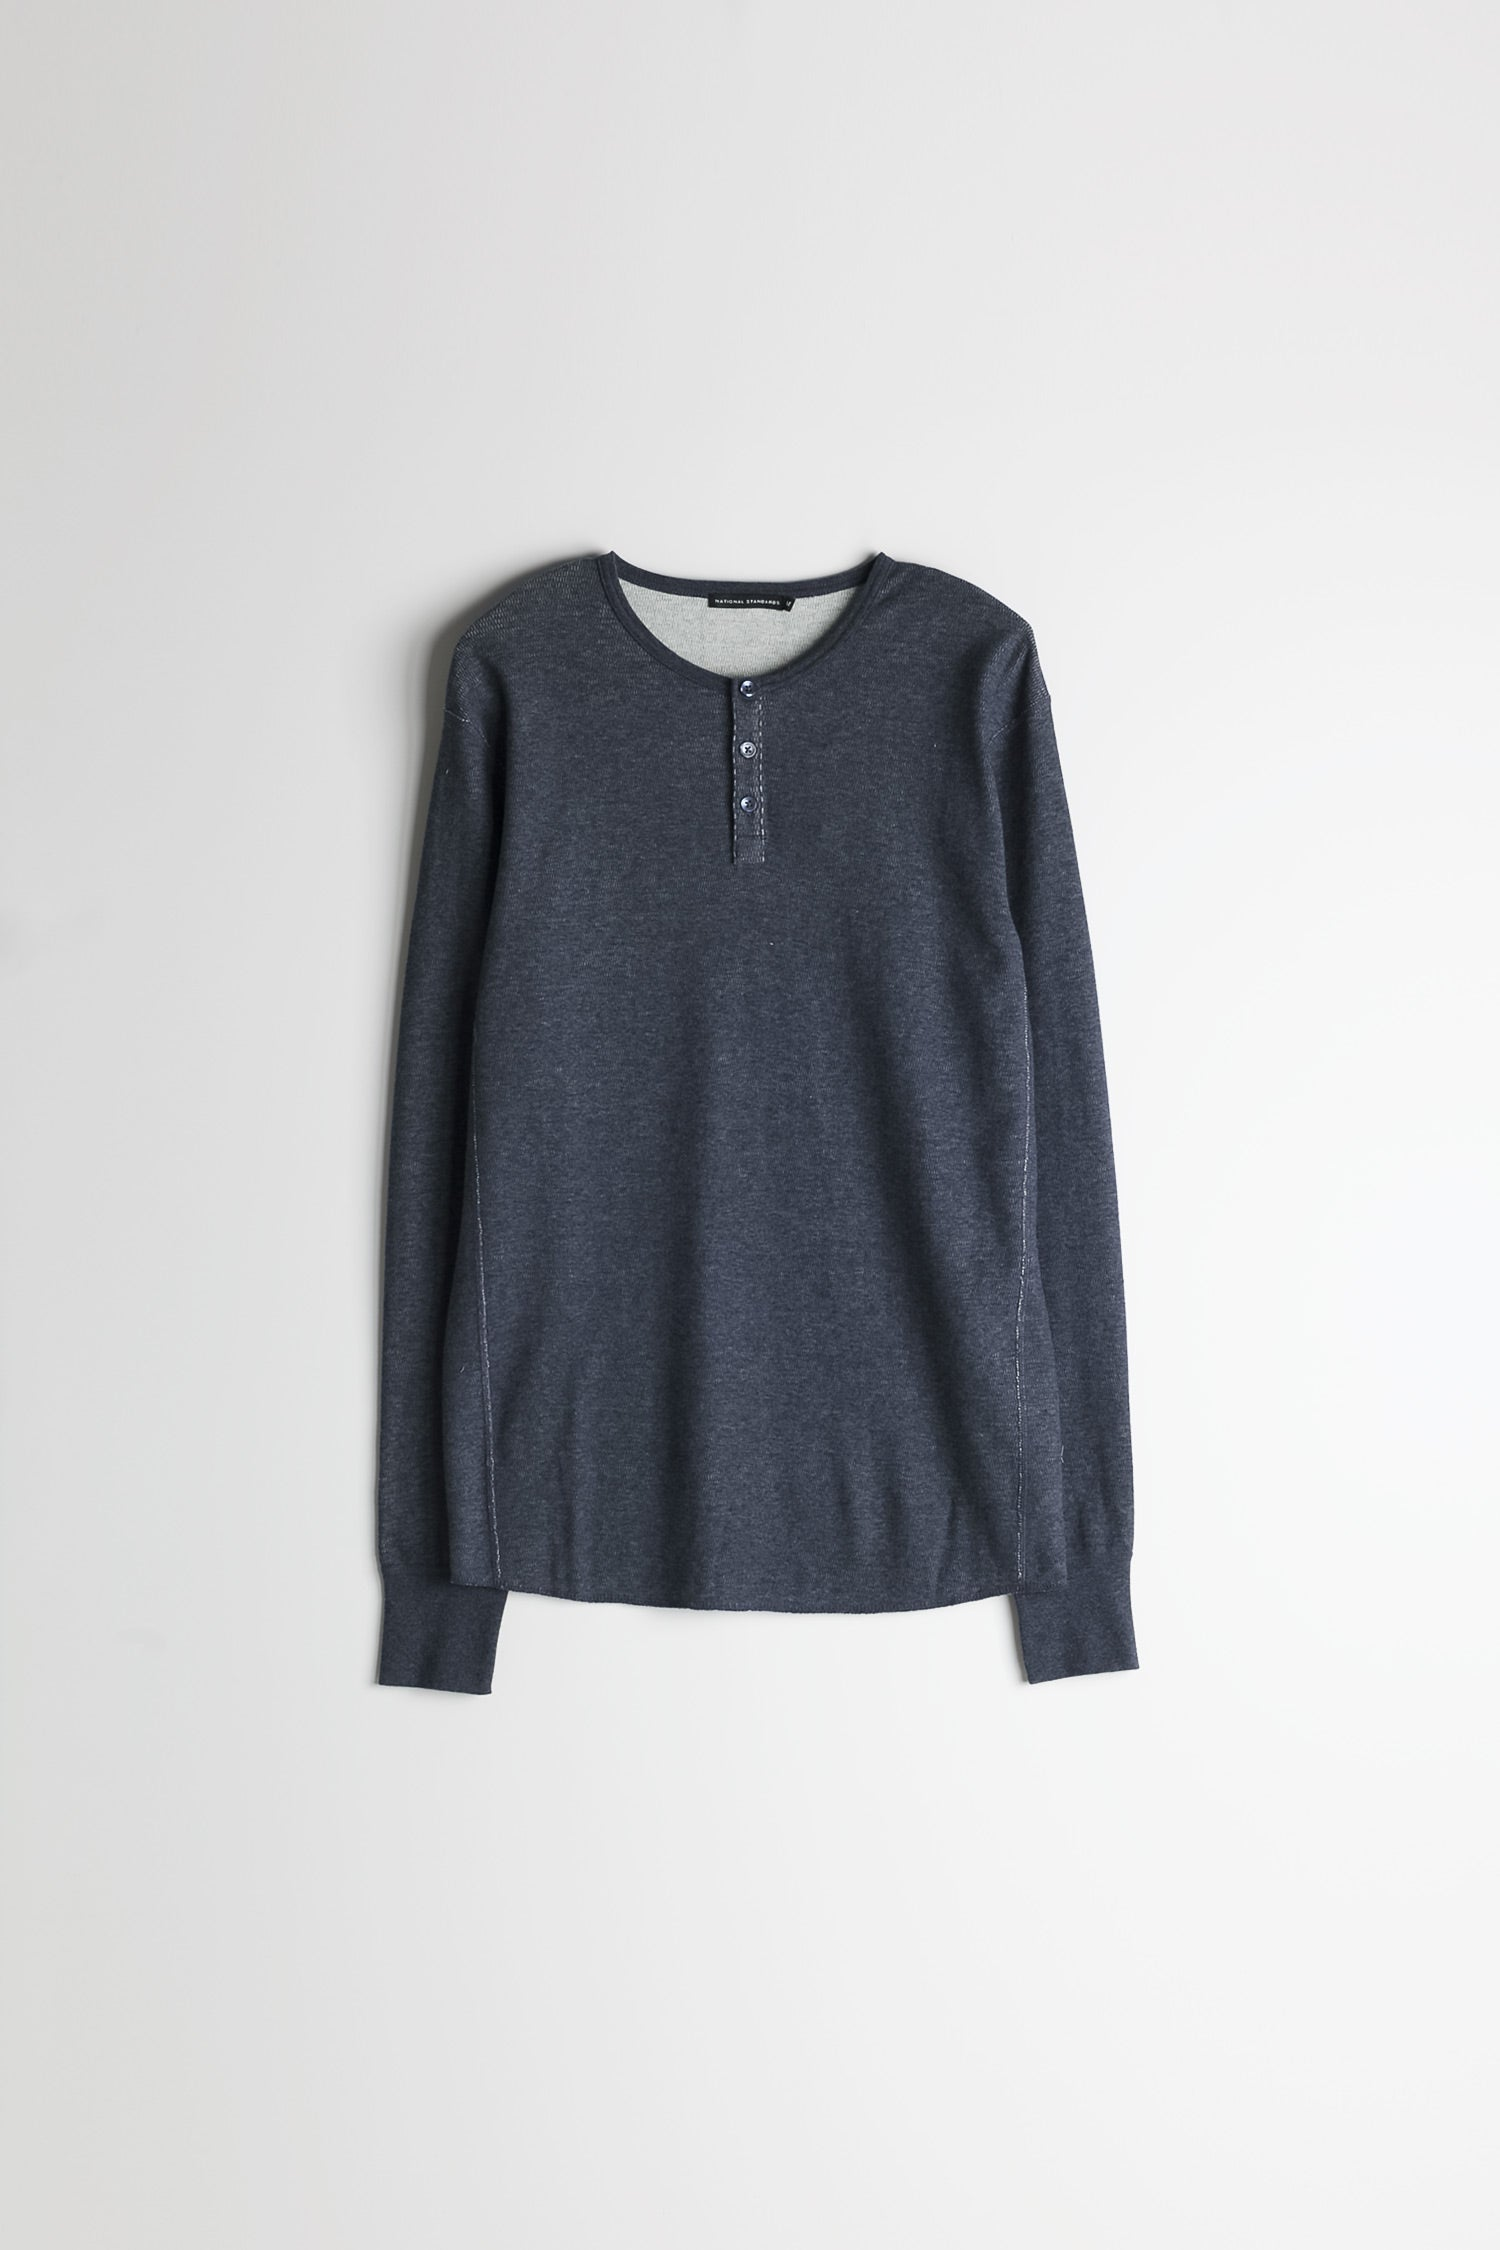 Mesh Thermal Henley in Melange Navy